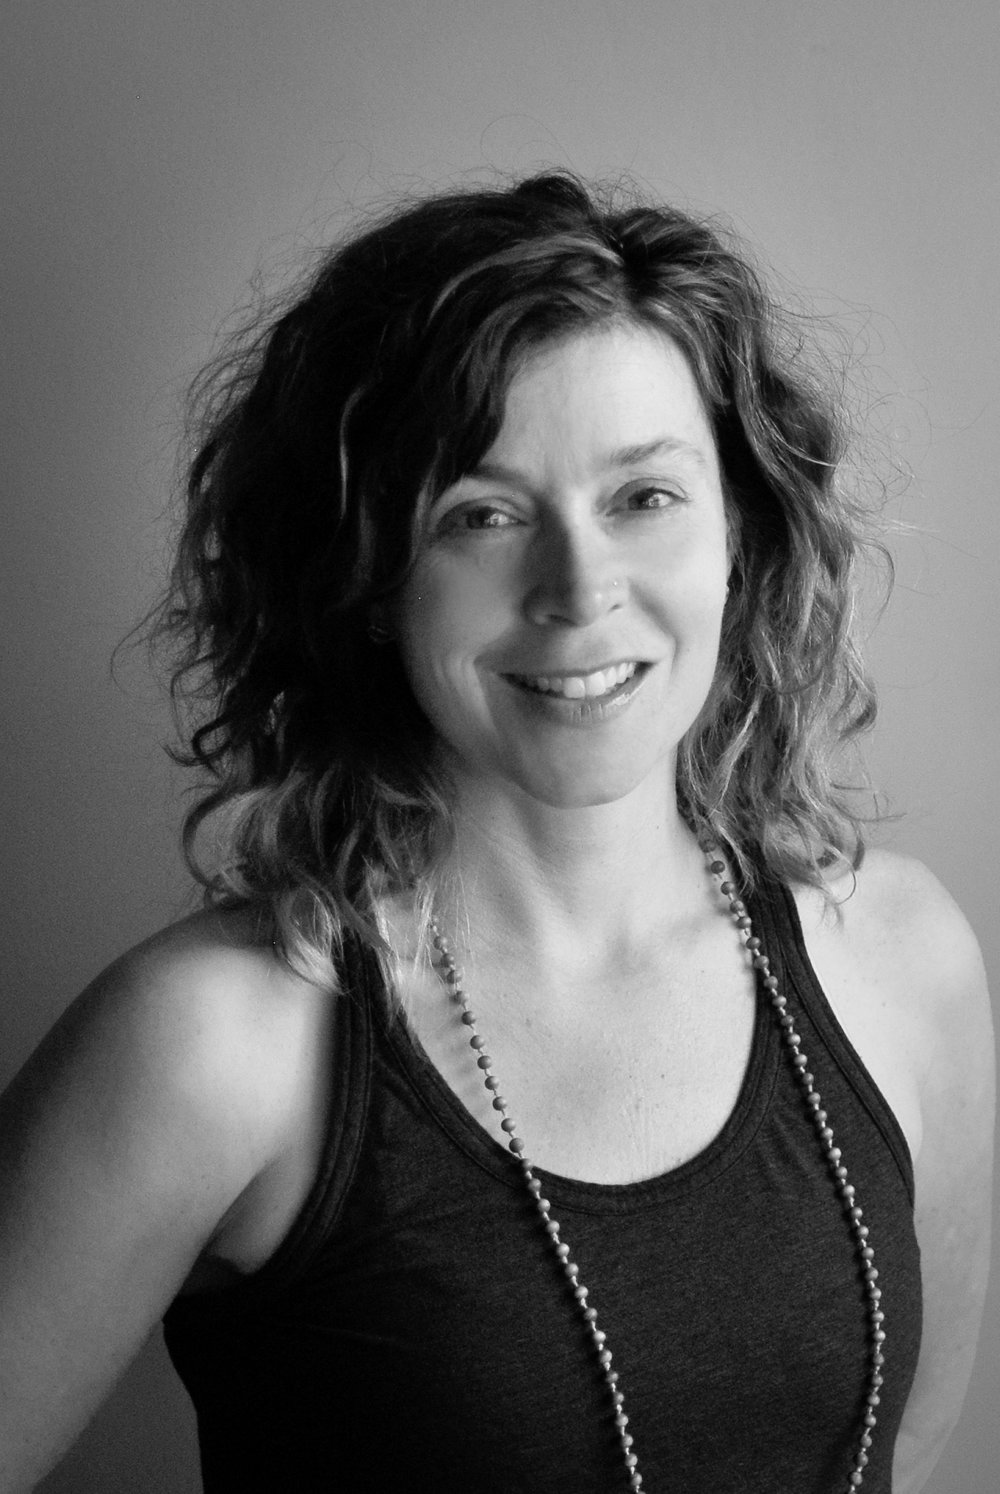 Nicola Fortin is a registered psychologist and has been working as a therapist for over 11 years. She is a yoga nidra and SATTVA yoga instructor. She has been practicing her own journey of awakening awareness for as long as she can remember. She is honoured to hold space for the light of awareness to shine. Nikki co-presented with Rameen on the psychology of meditation in the Science of Self meditation course which was just recently offered at the SATTVA School earlier this year.